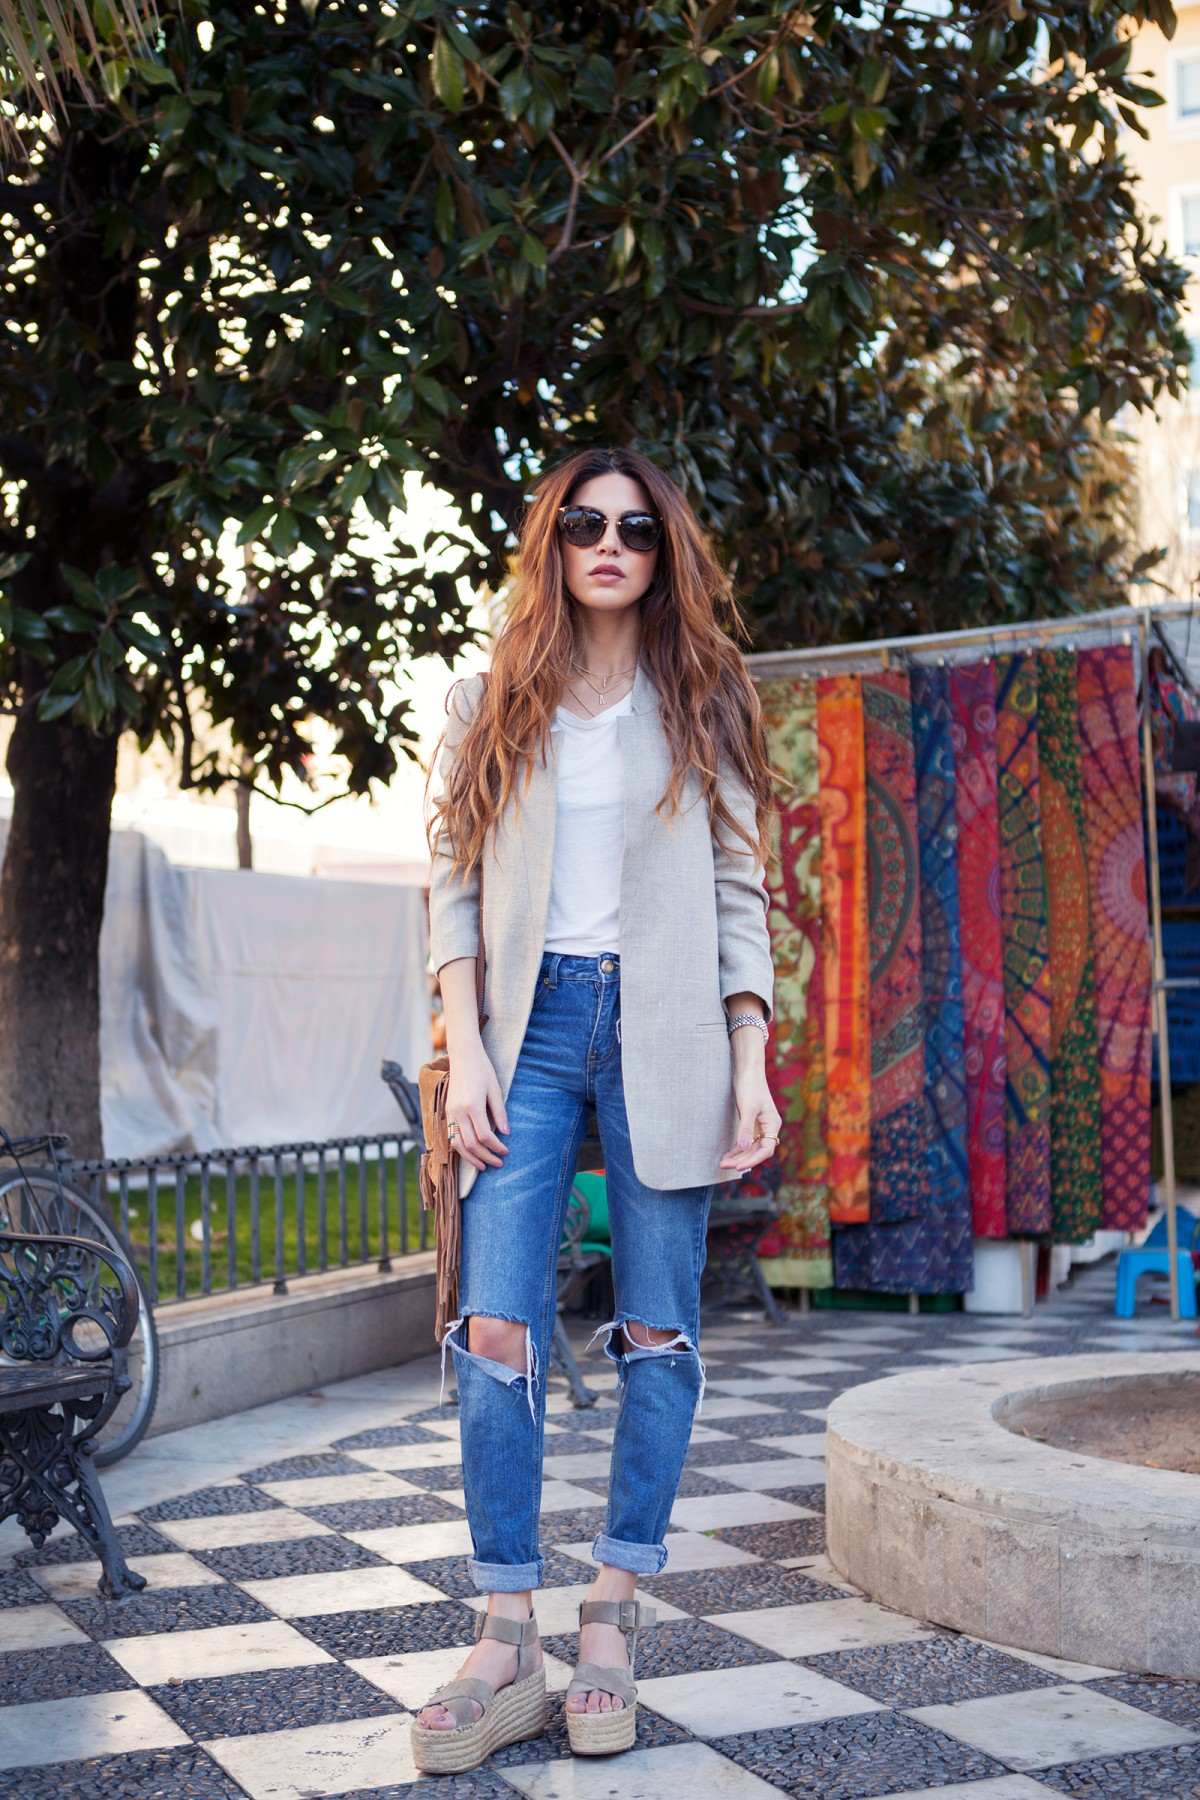 Negin Mirsalehi is wearing a pair of pale grey Céline Espadrilles Criss Cross platform sandals